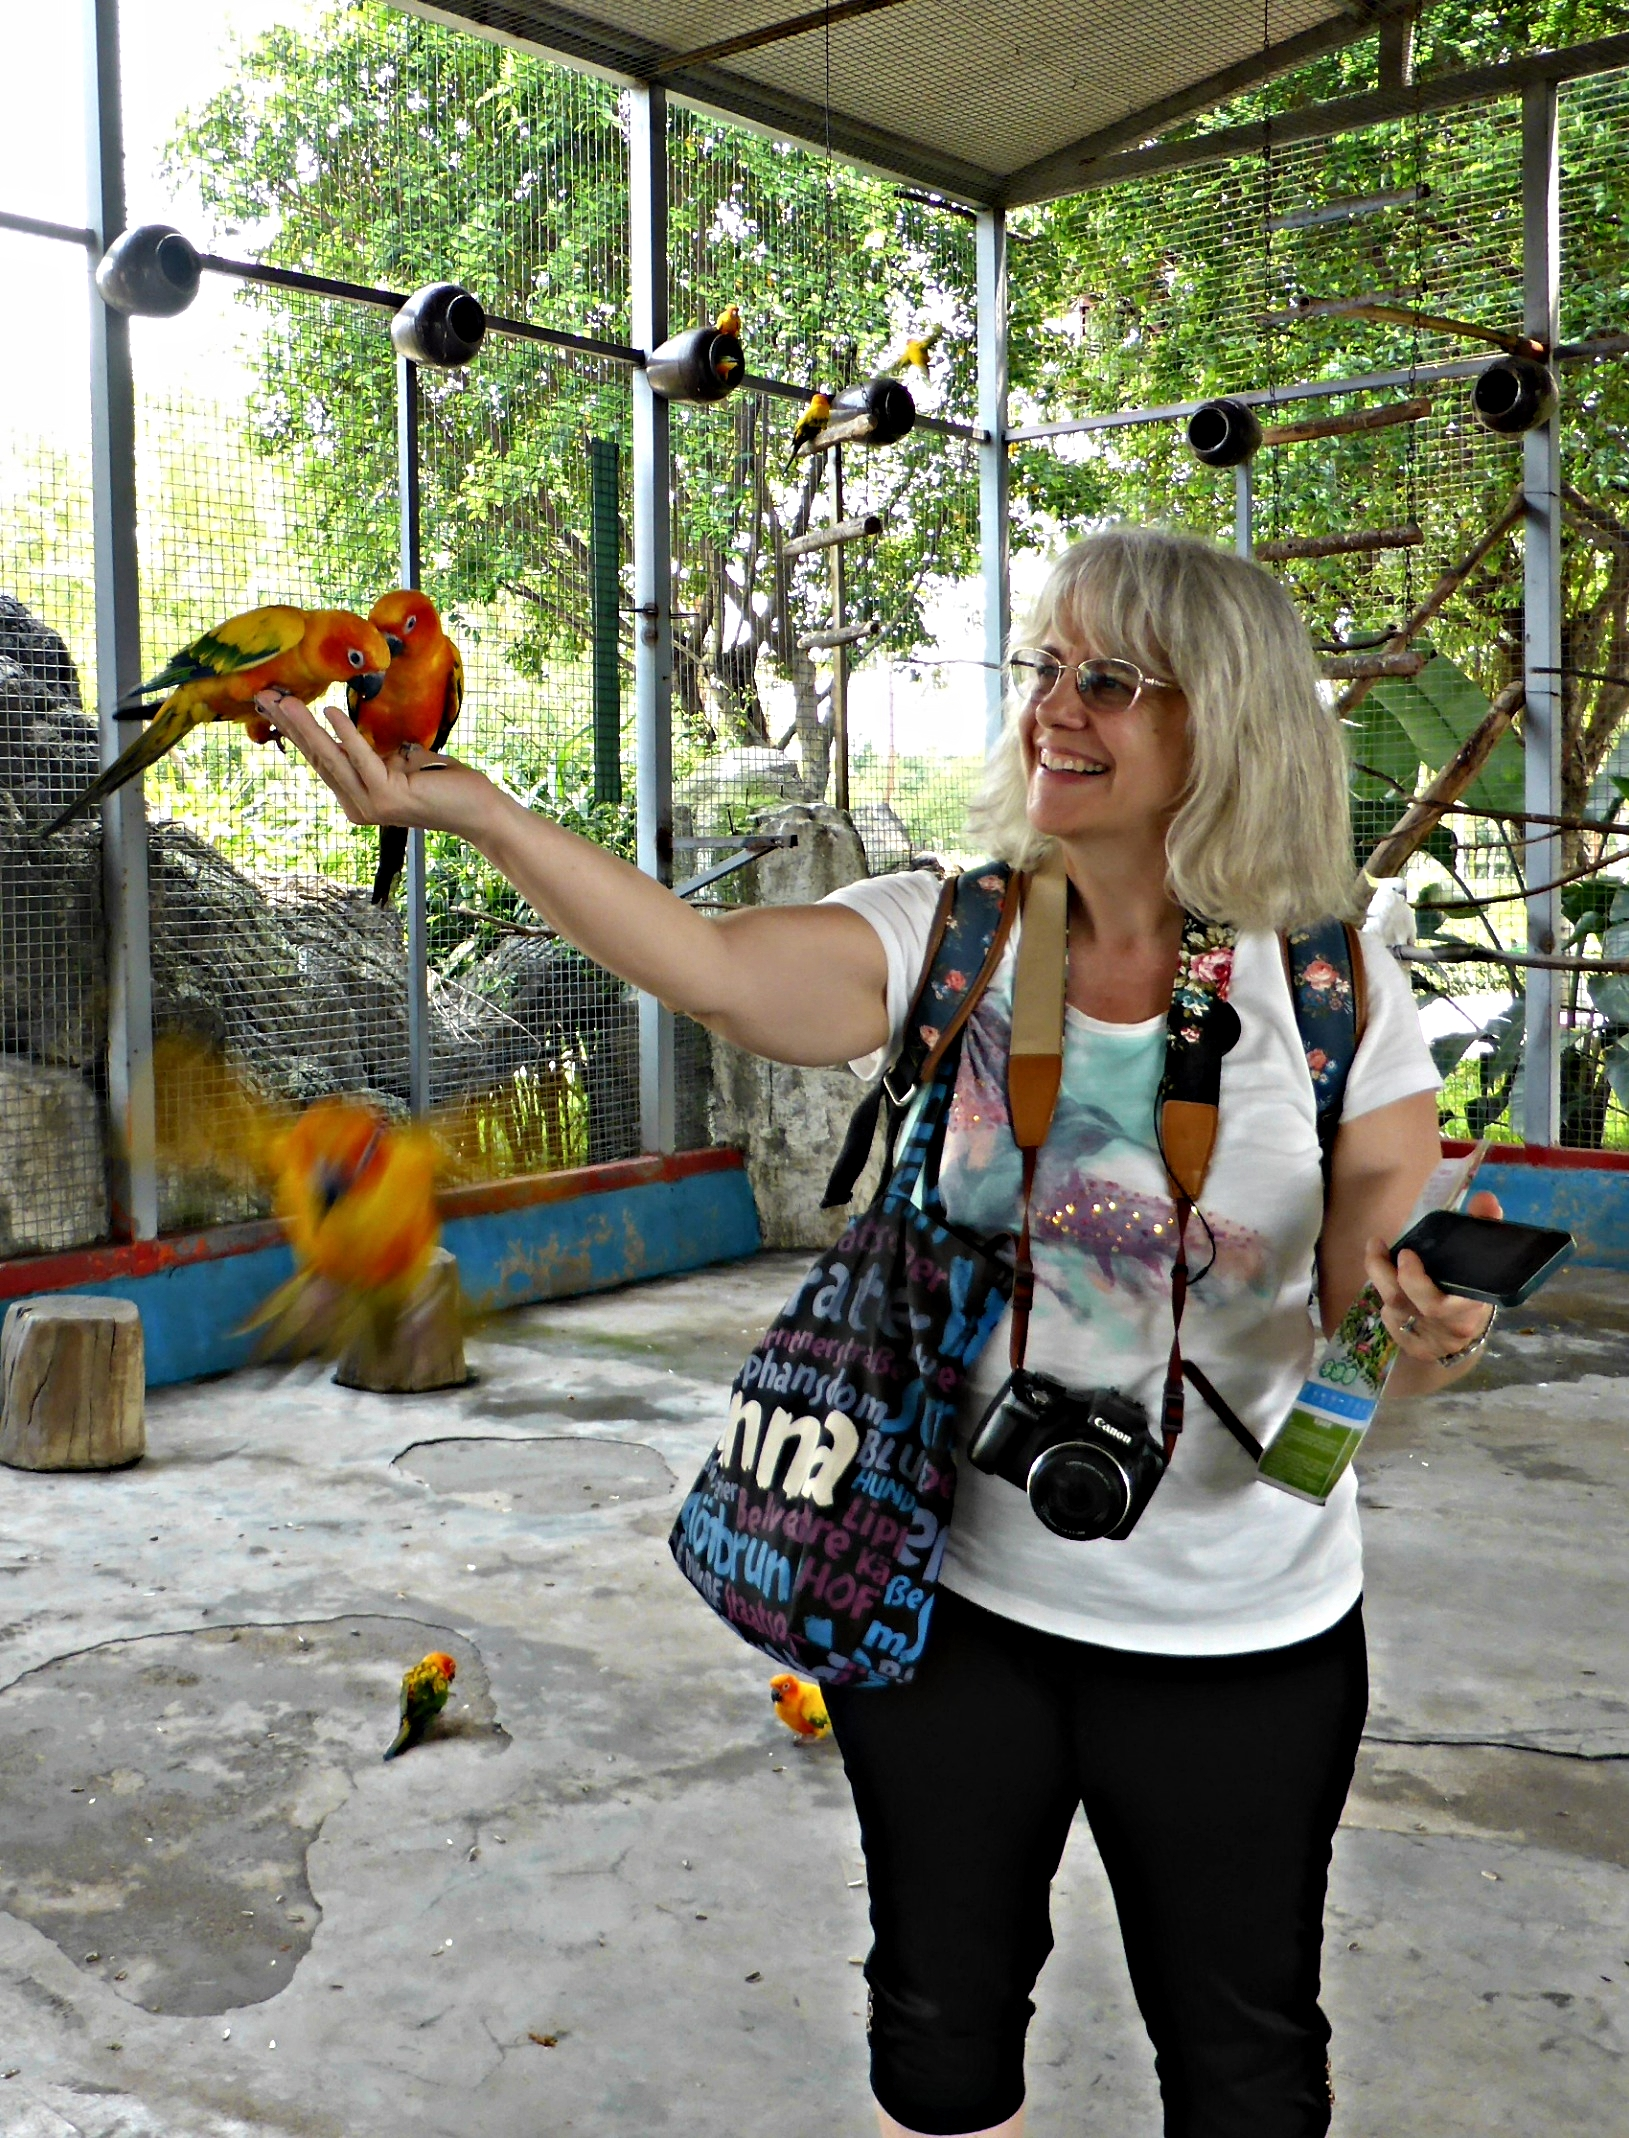 I hadn't paid to feed the parakeets, I just went in to take pictures, but the man working came and put some seeds in my hand so Leah took my picture :-)